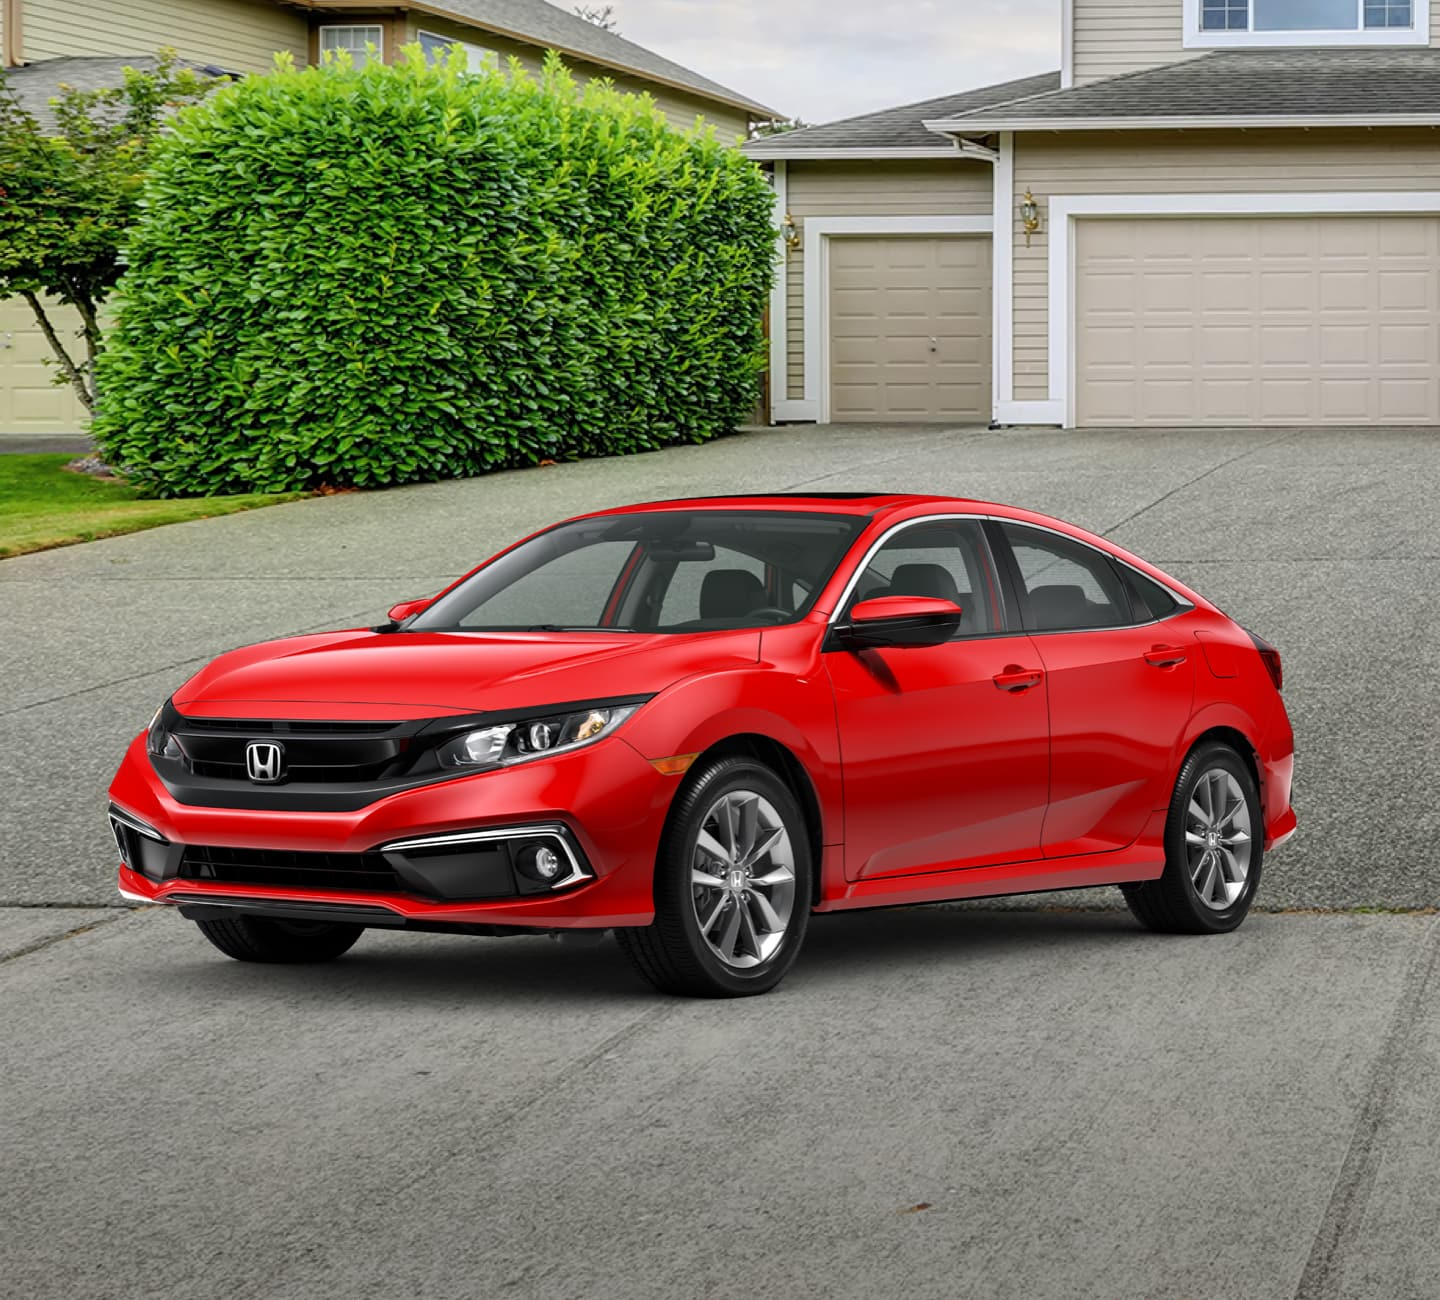 Red Honda parked in driveway